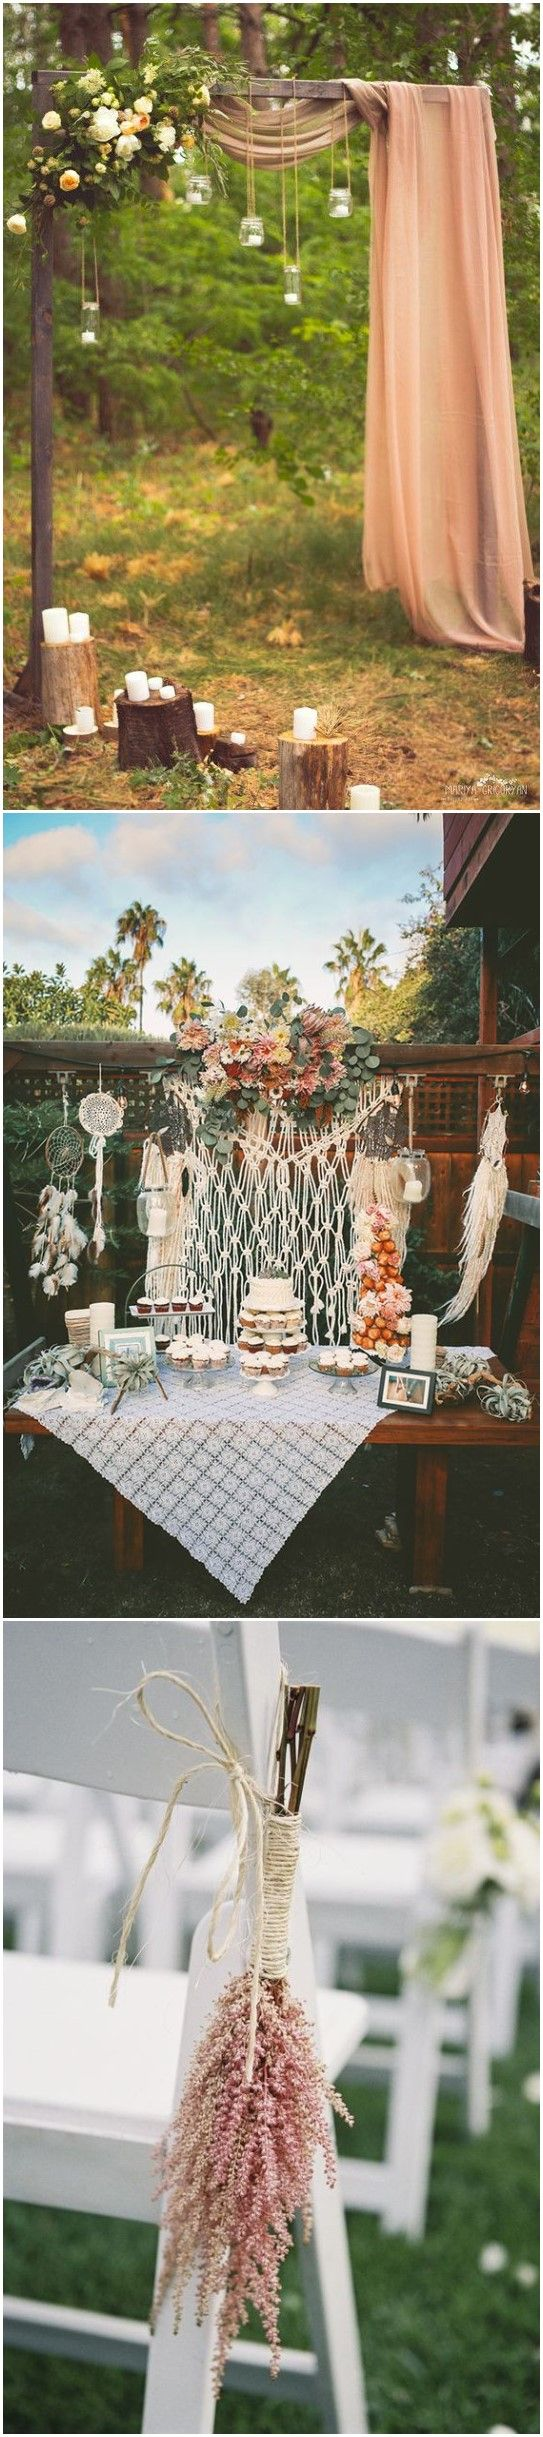 Wedding ideas 20 gorgeous boho wedding dcor ideas on pinterest wedding ideas 20 gorgeous boho wedding dcor ideas on pinterest see junglespirit